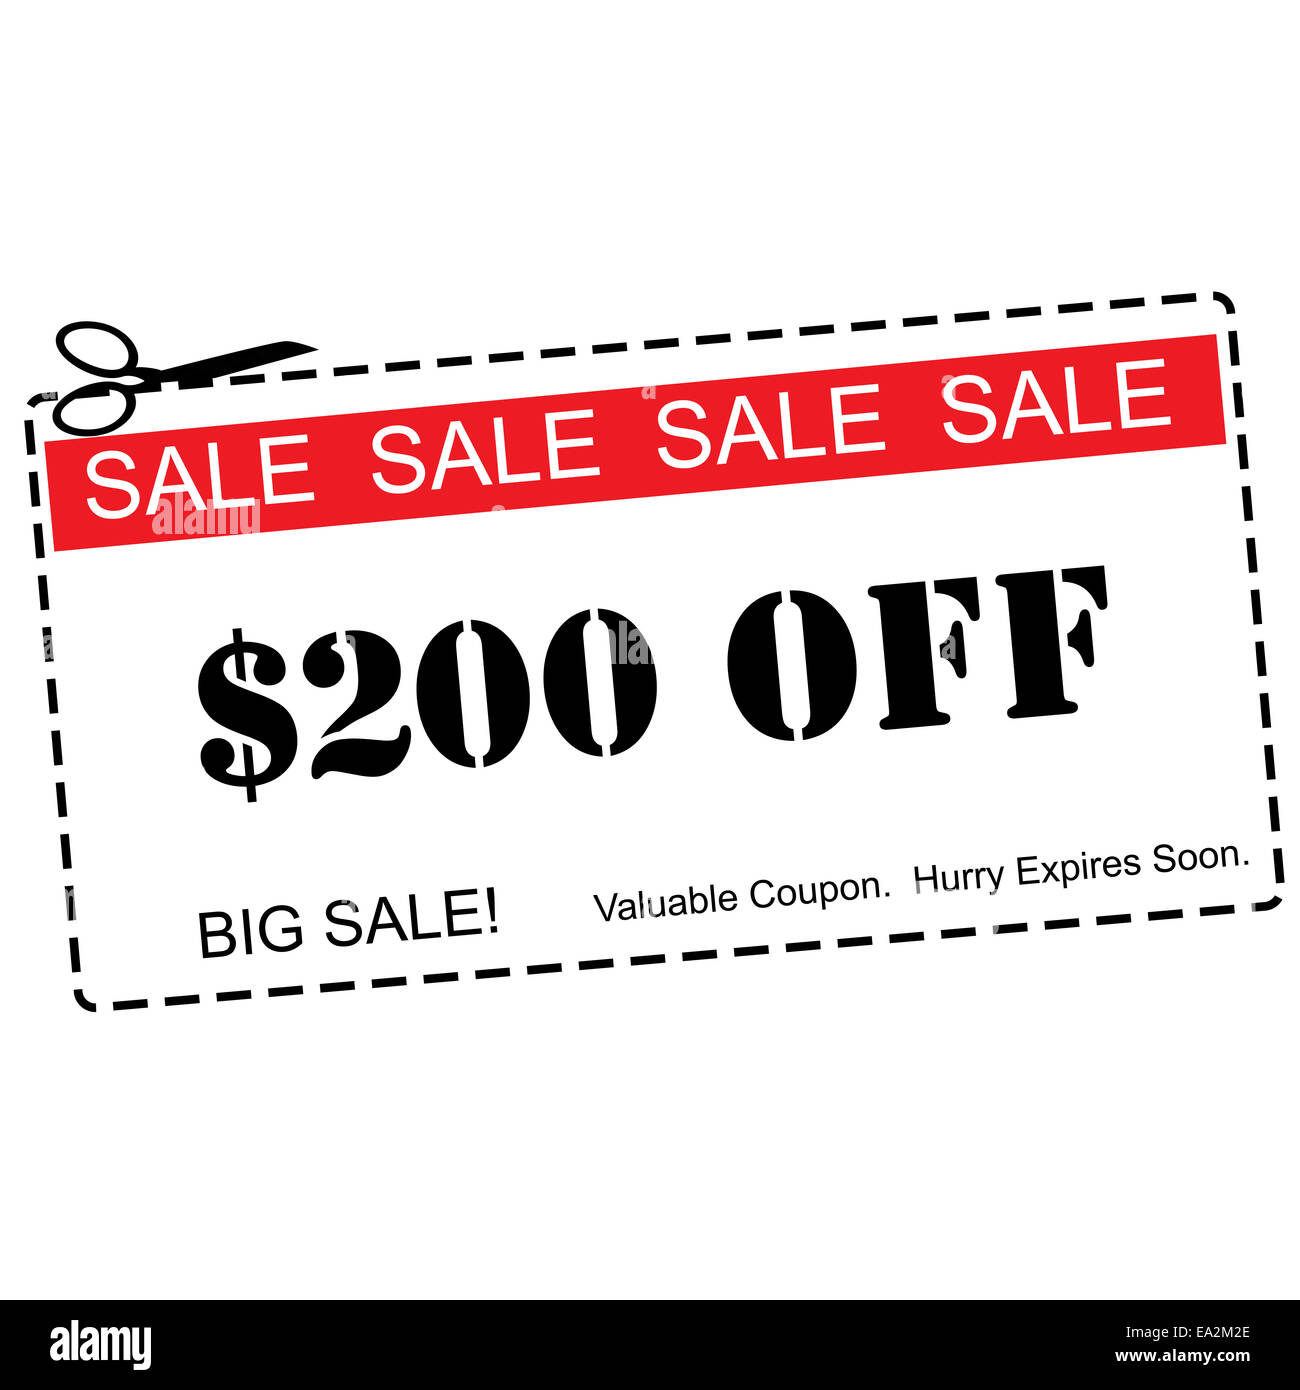 200 off big sale red and white coupon making a great concept stock